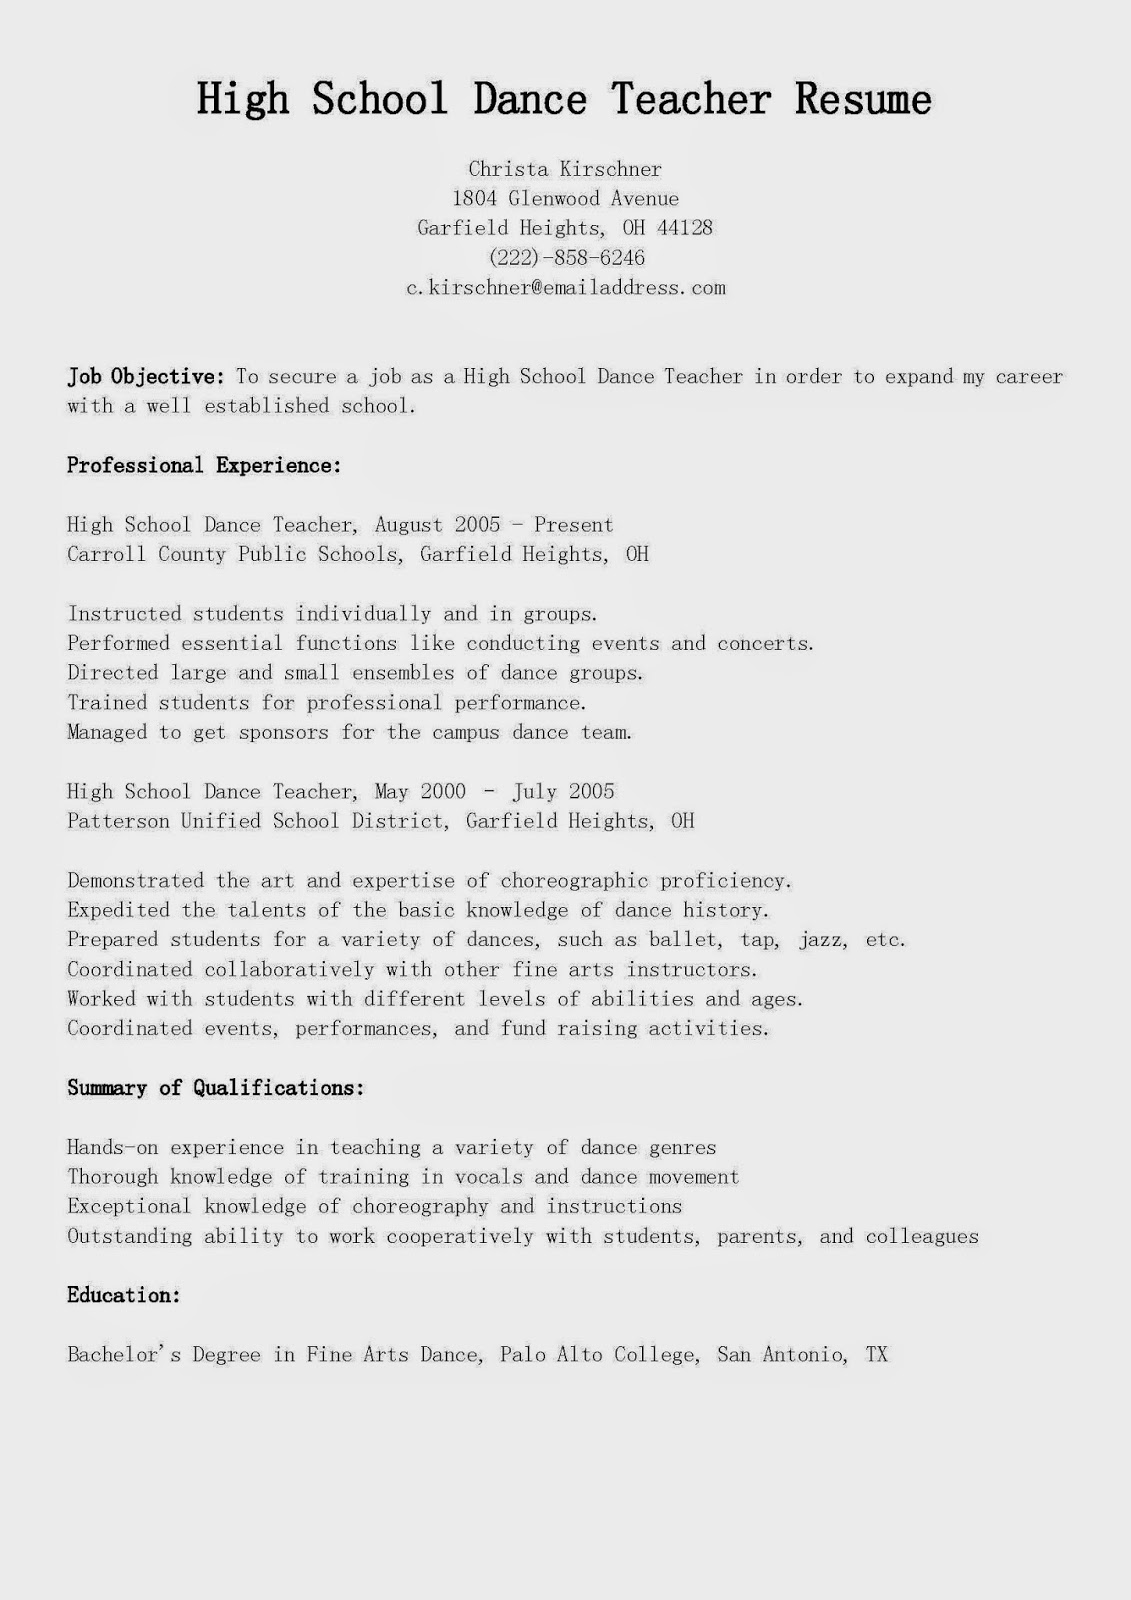 sample resume of dance teacher create professional resumes sample resume of dance teacher teacher resume samples o resumebaking example resume high school teacher resume